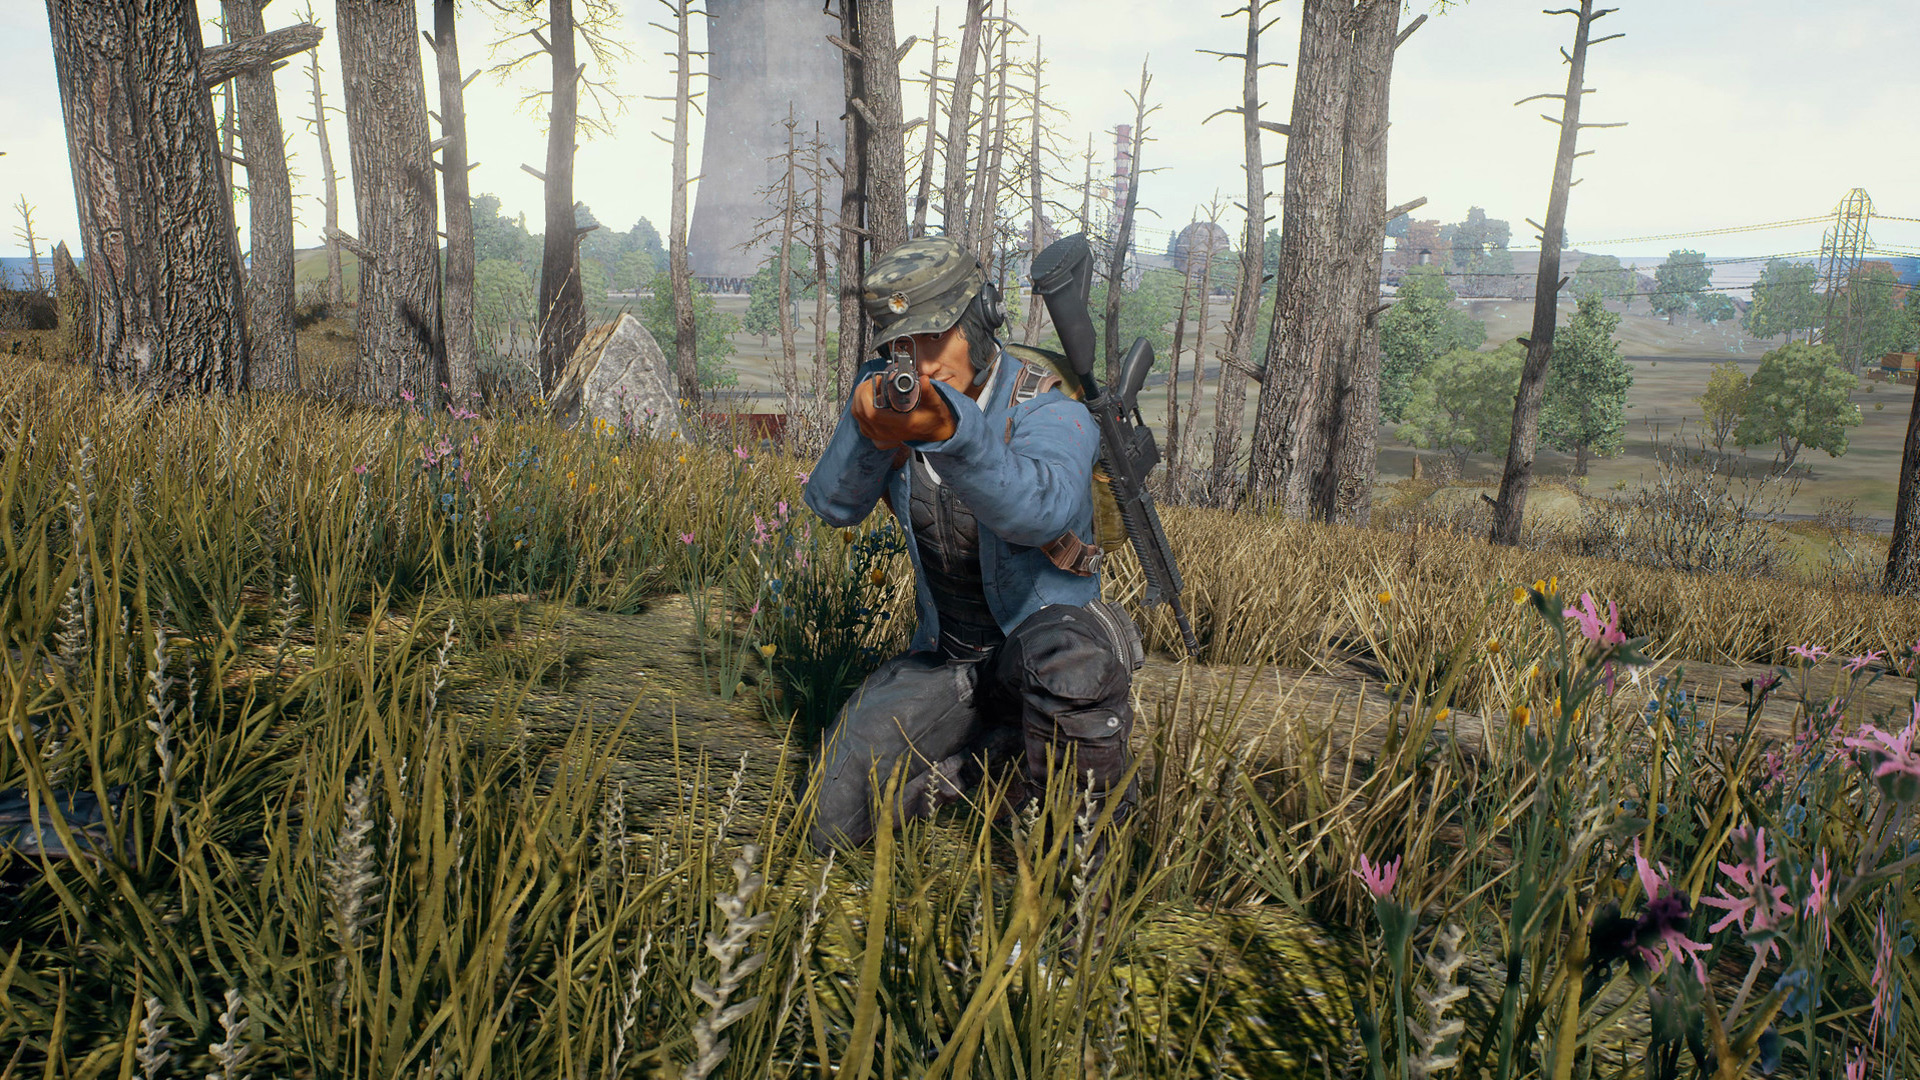 PlayerUnknown's Battlegrounds Is Talking to Sony About a PlayStation 4 Release